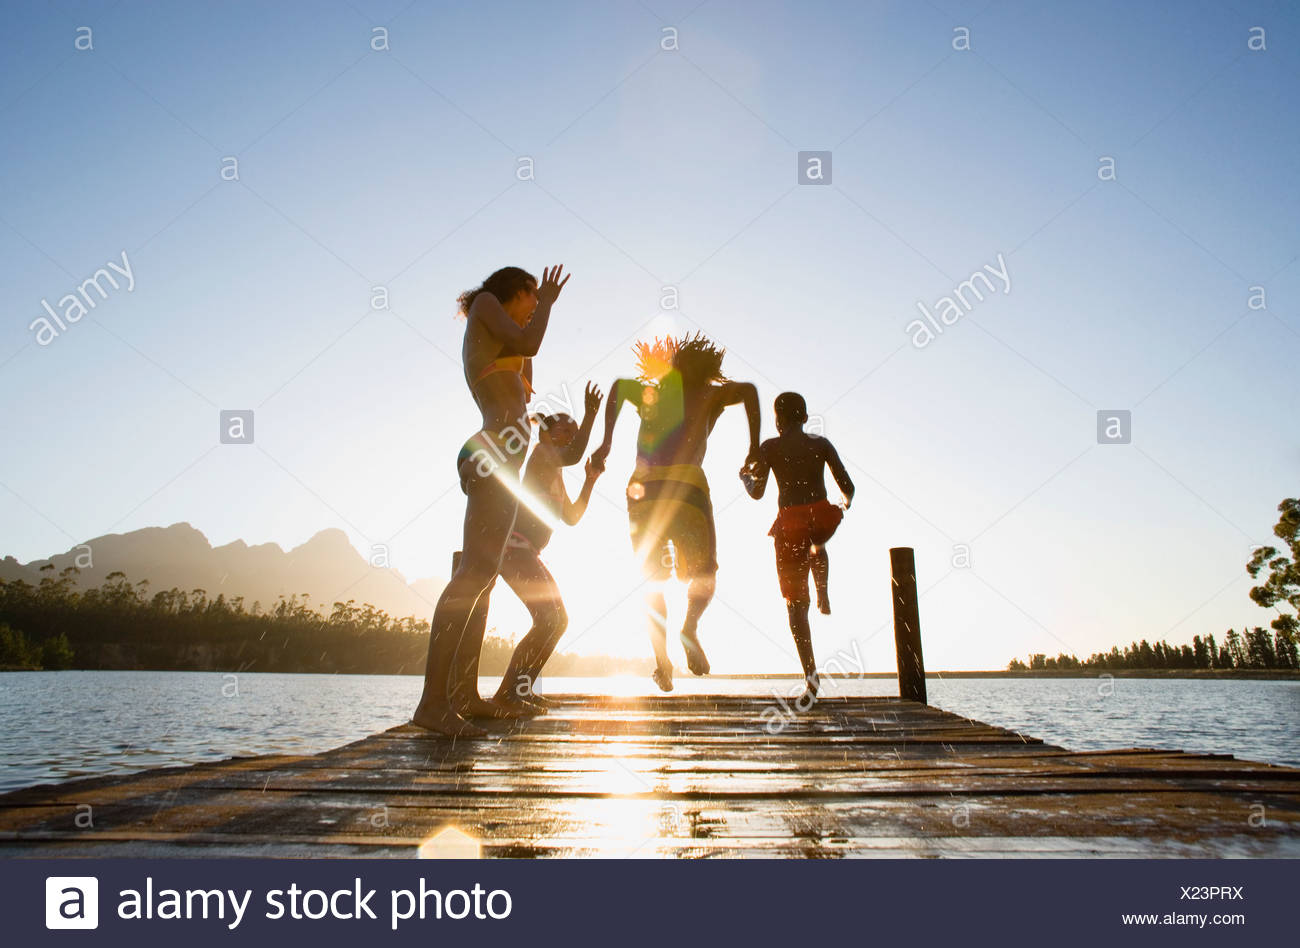 Family in swimwear running along jetty jumping into lake at sunset rear view surface level lens flare - Stock Image